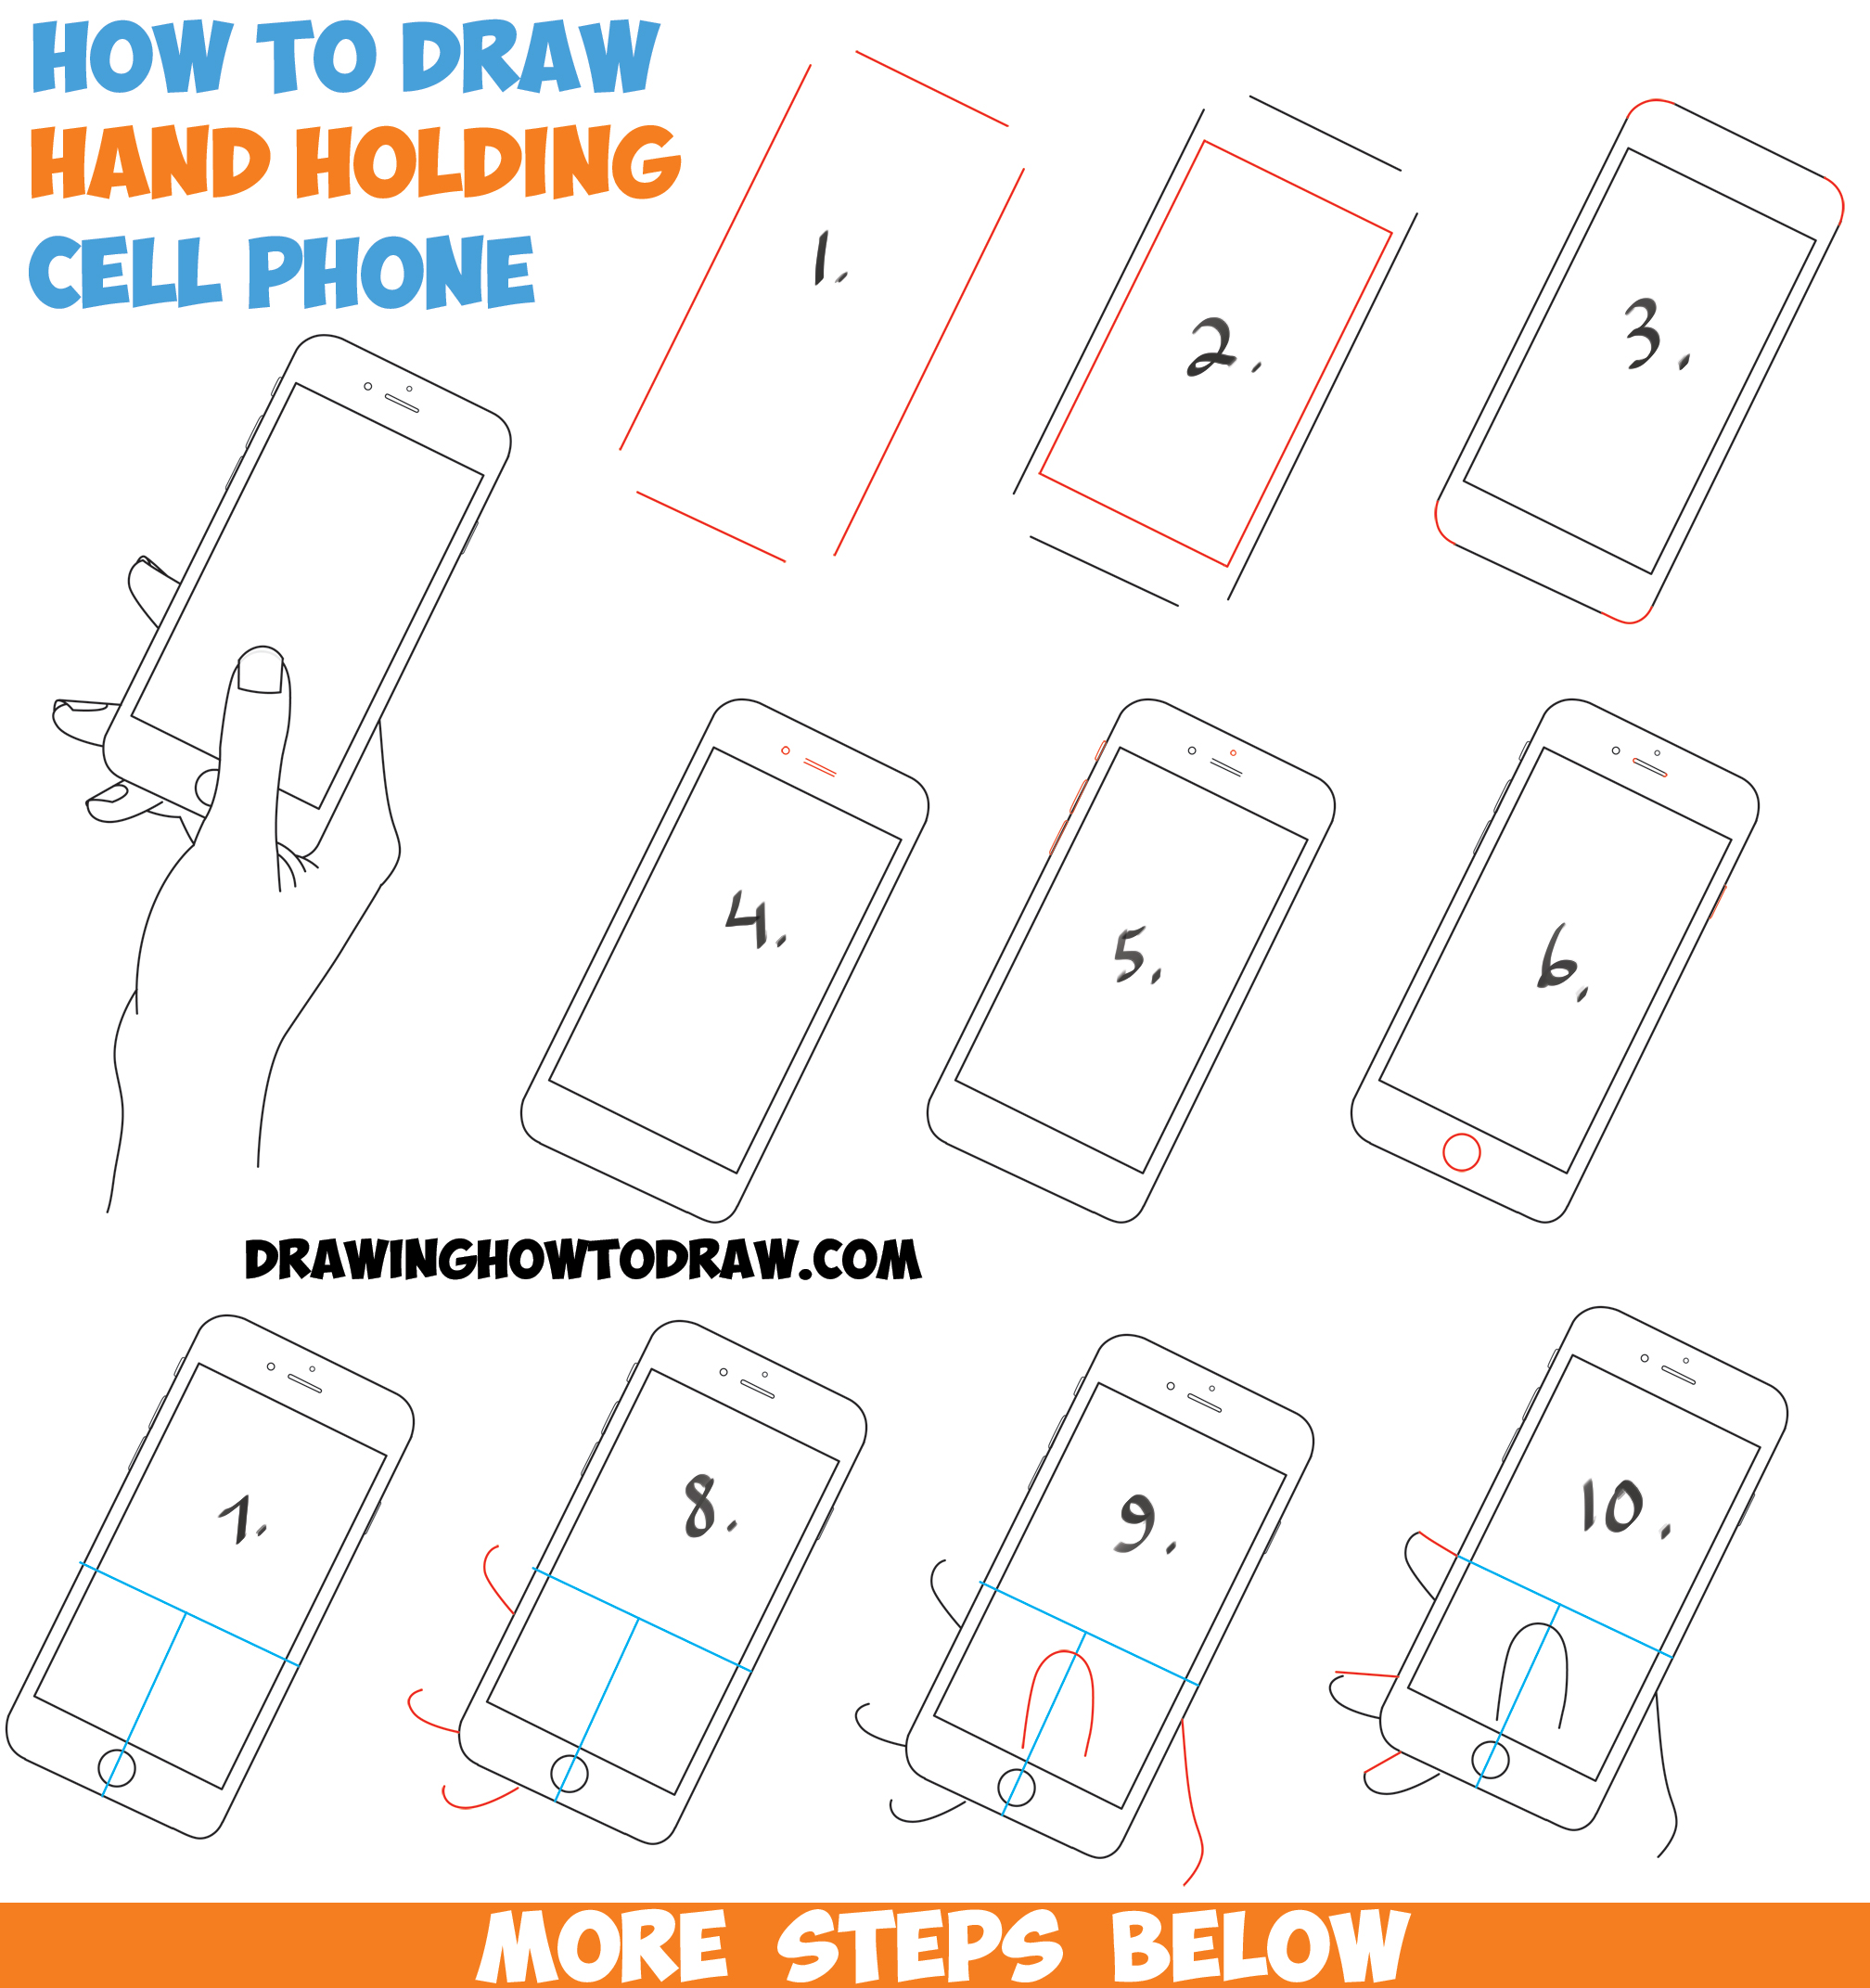 How to Draw a Hand Holding a Cell Phone / iPhone in Easy Step by Step Drawing Tutorial